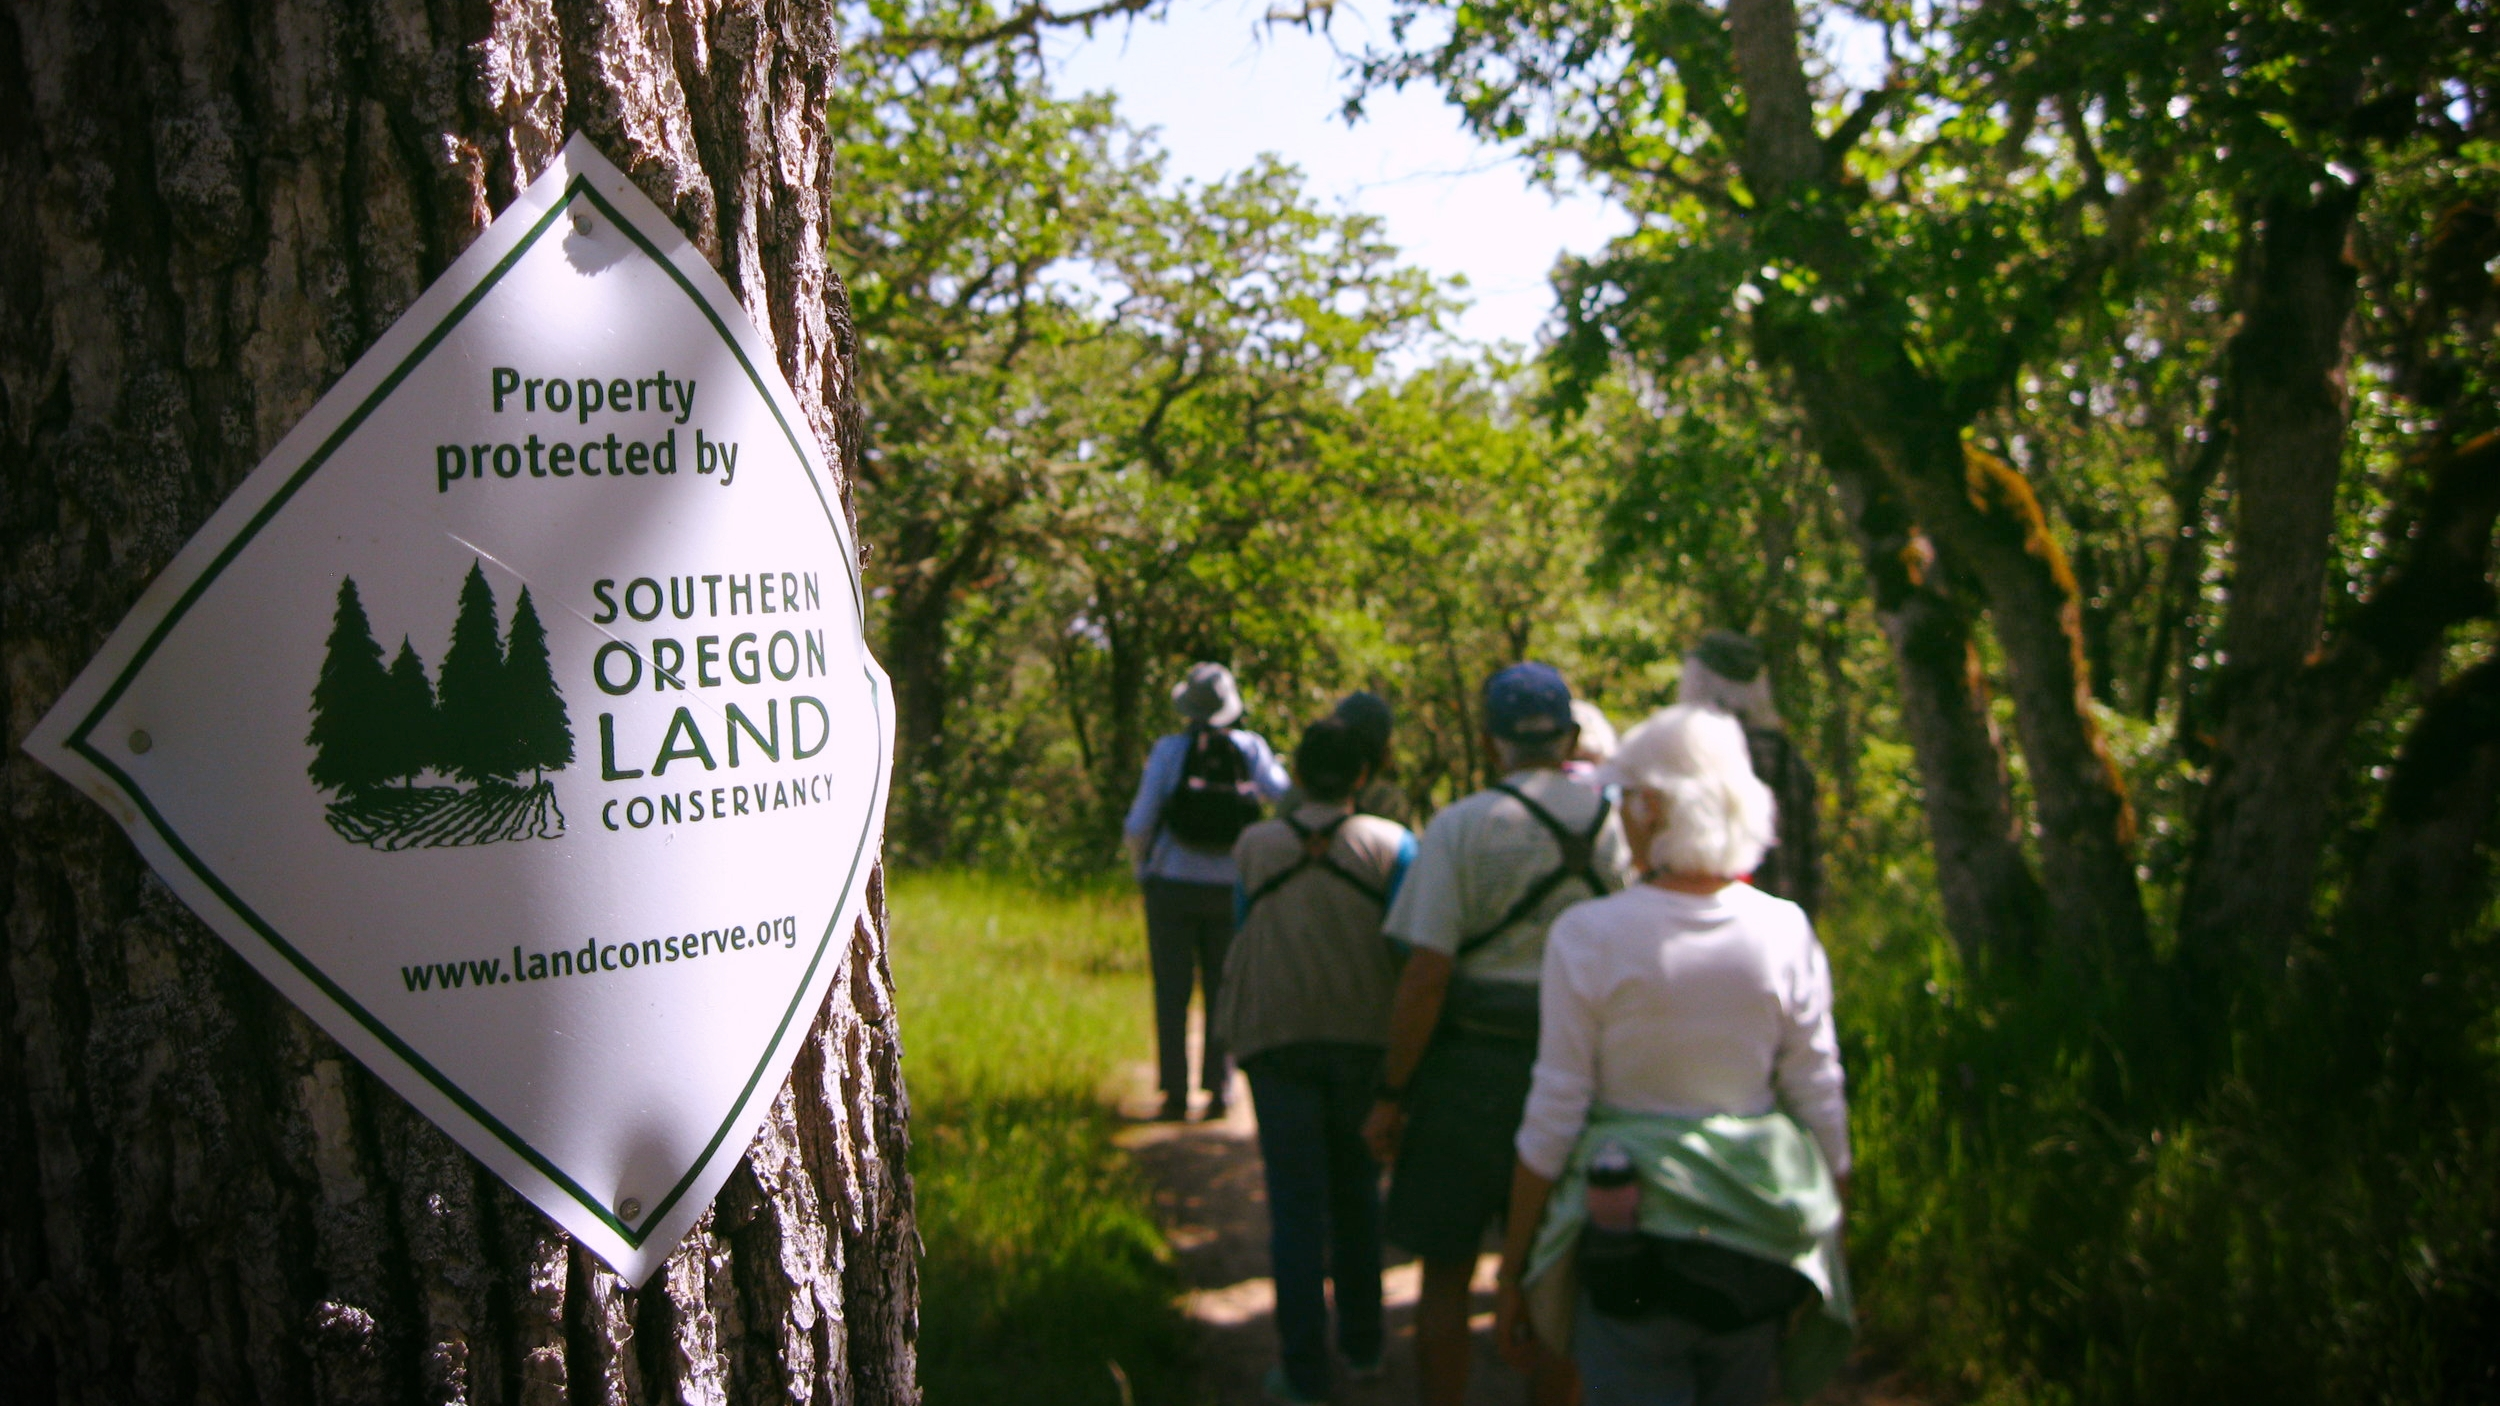 Hikers enjoying a guided bird walk in the conserved Jacksonville Woodlands.